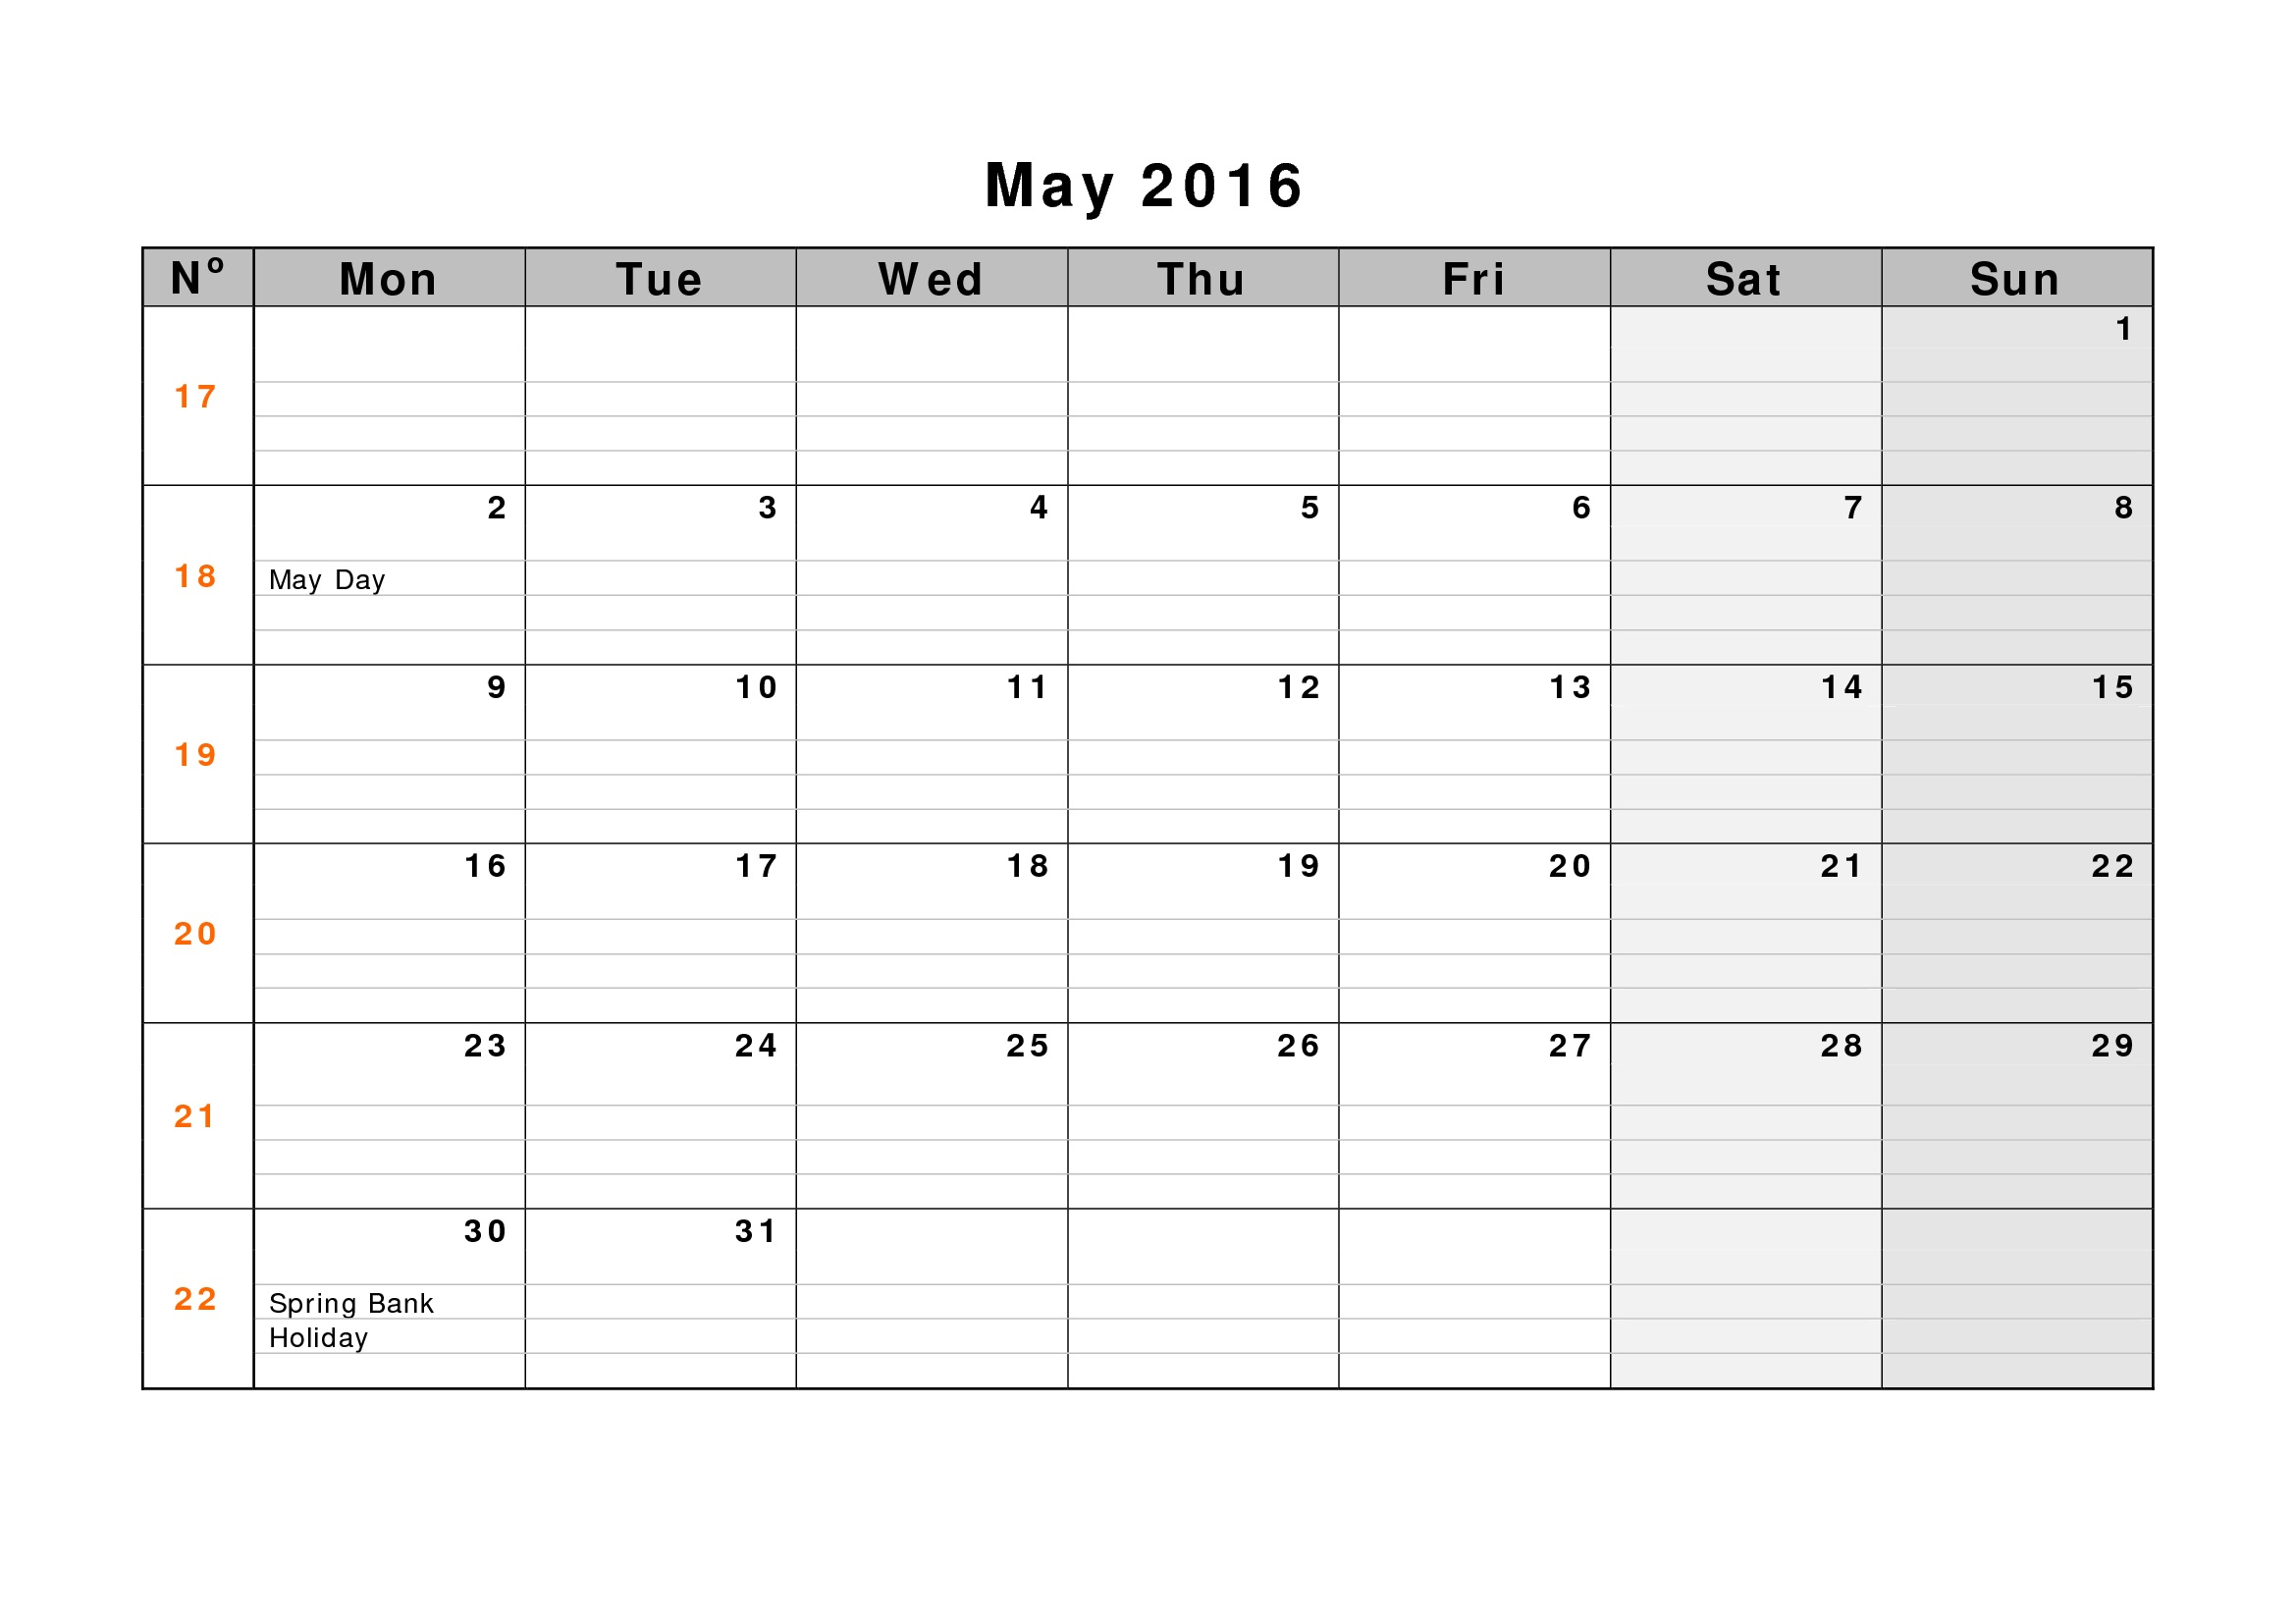 May 2016 Weekly Printable Calendar, May 2016 Weekly Blank Templates, May 2016 Weekly Calendar Printable, May 2016 Weekly Calendar Templates, May 2016 Weekly Editable Templates